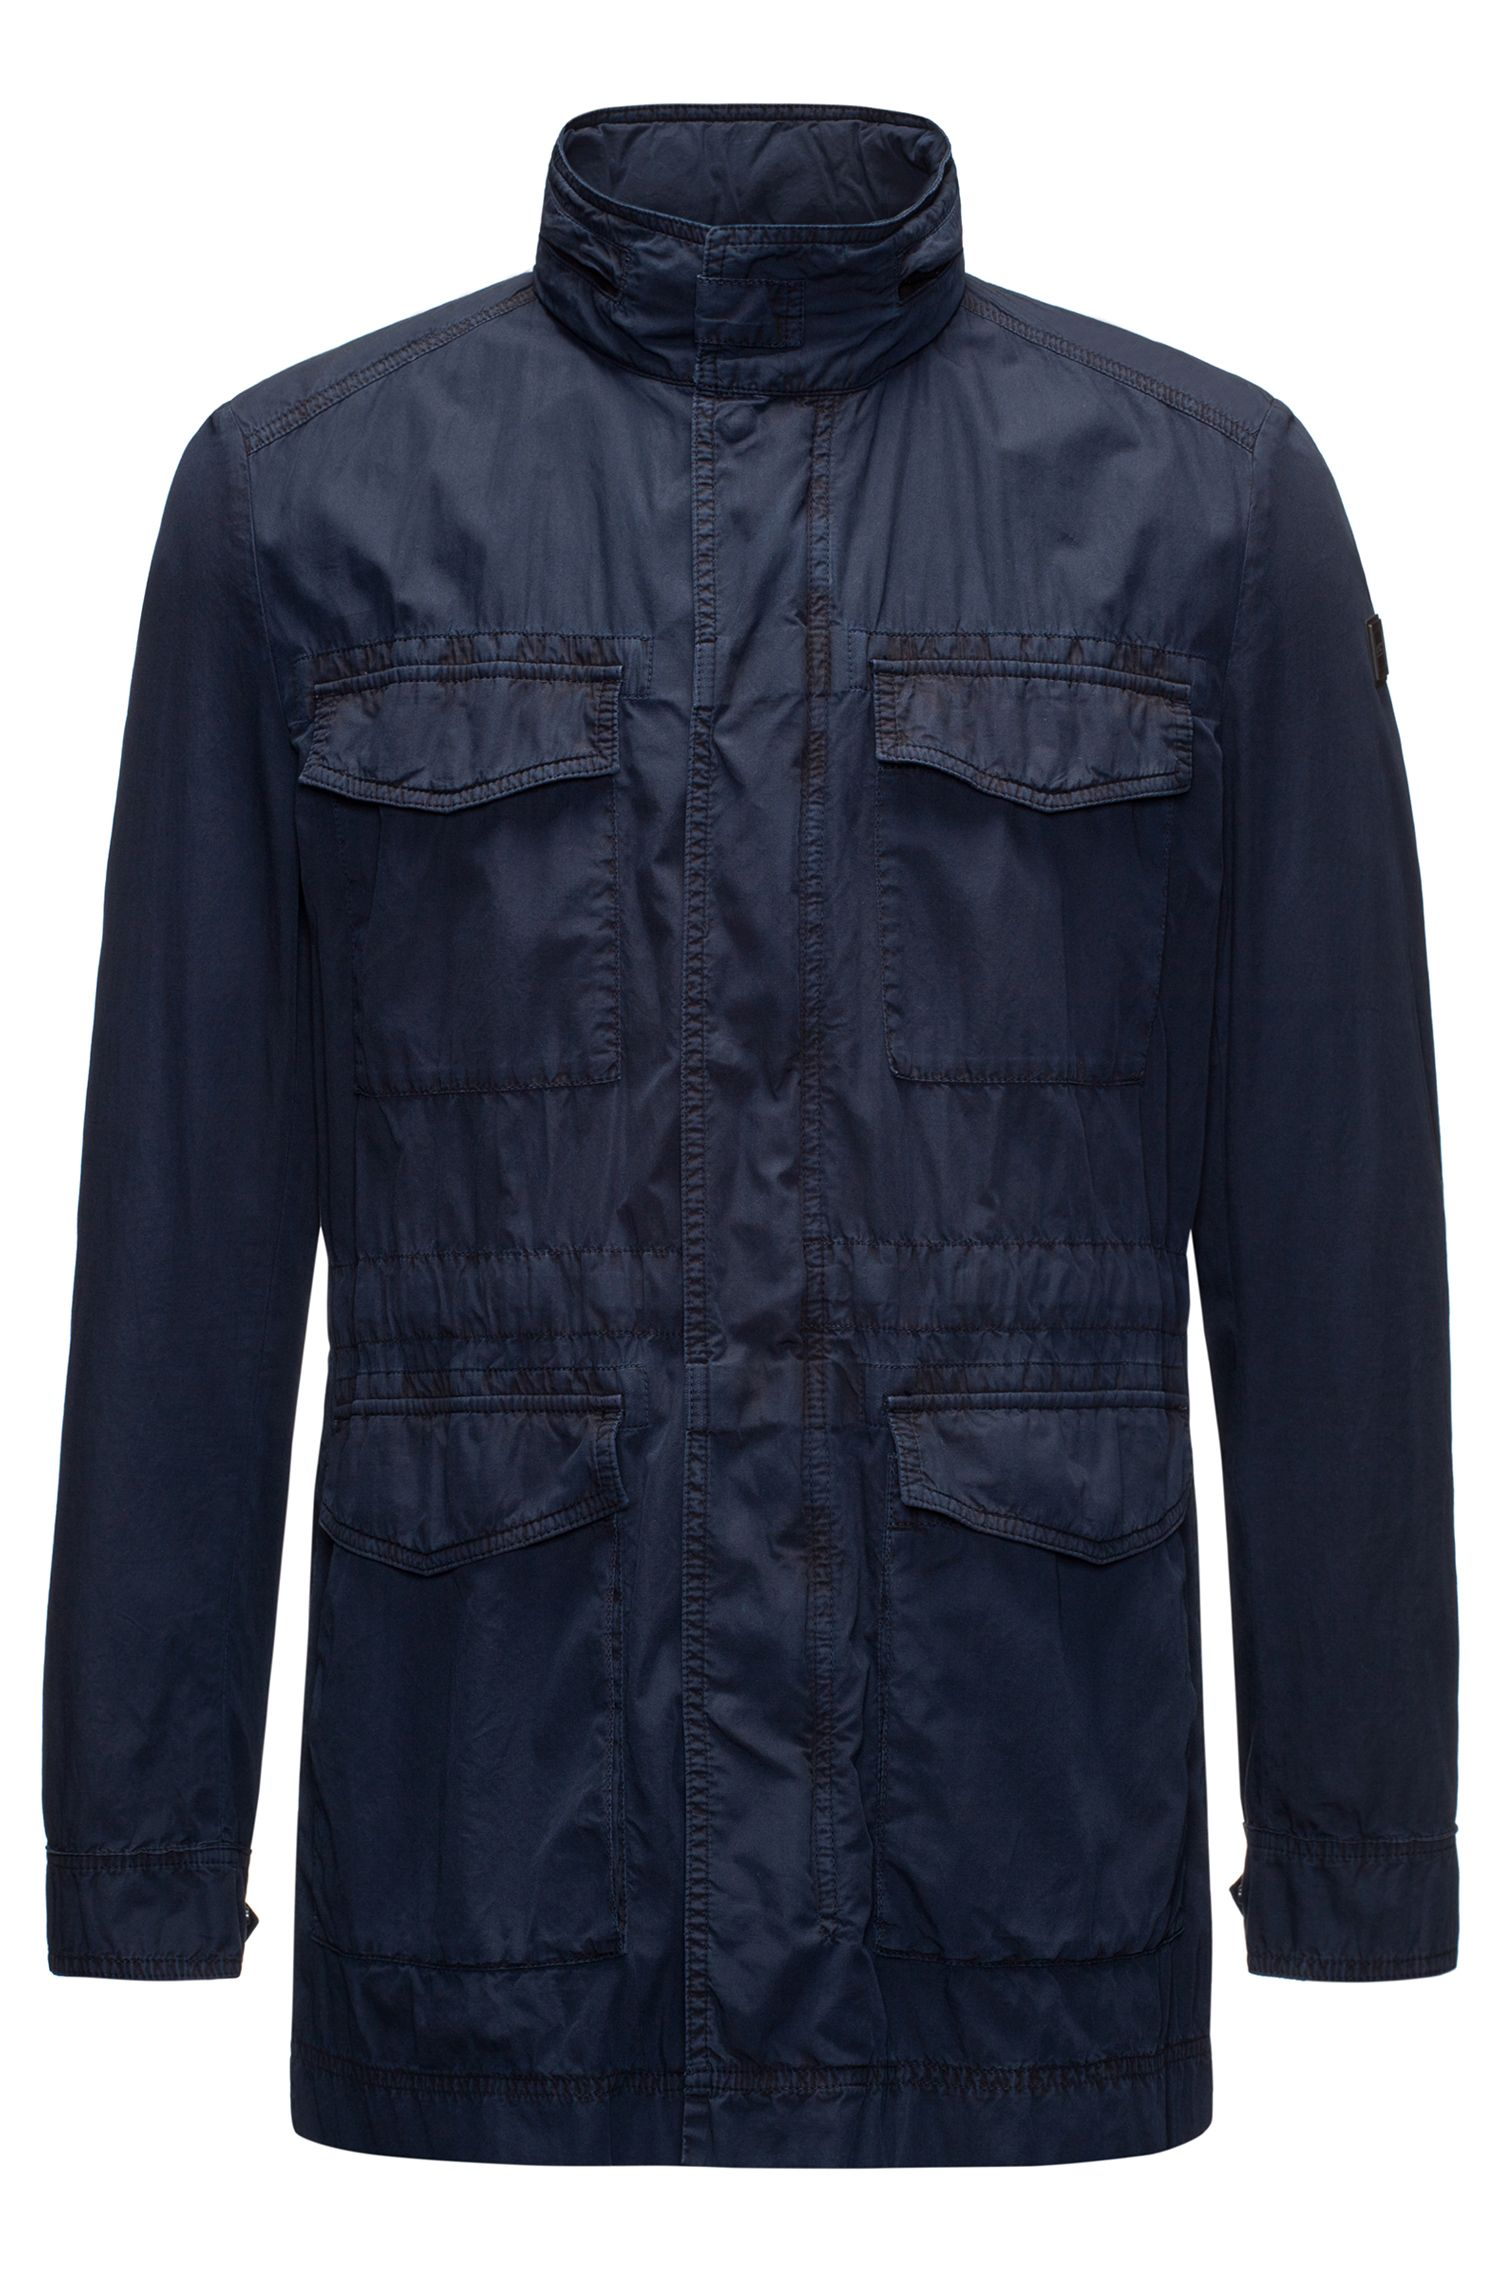 Lightweight field jacket in Italian mercerised cotton